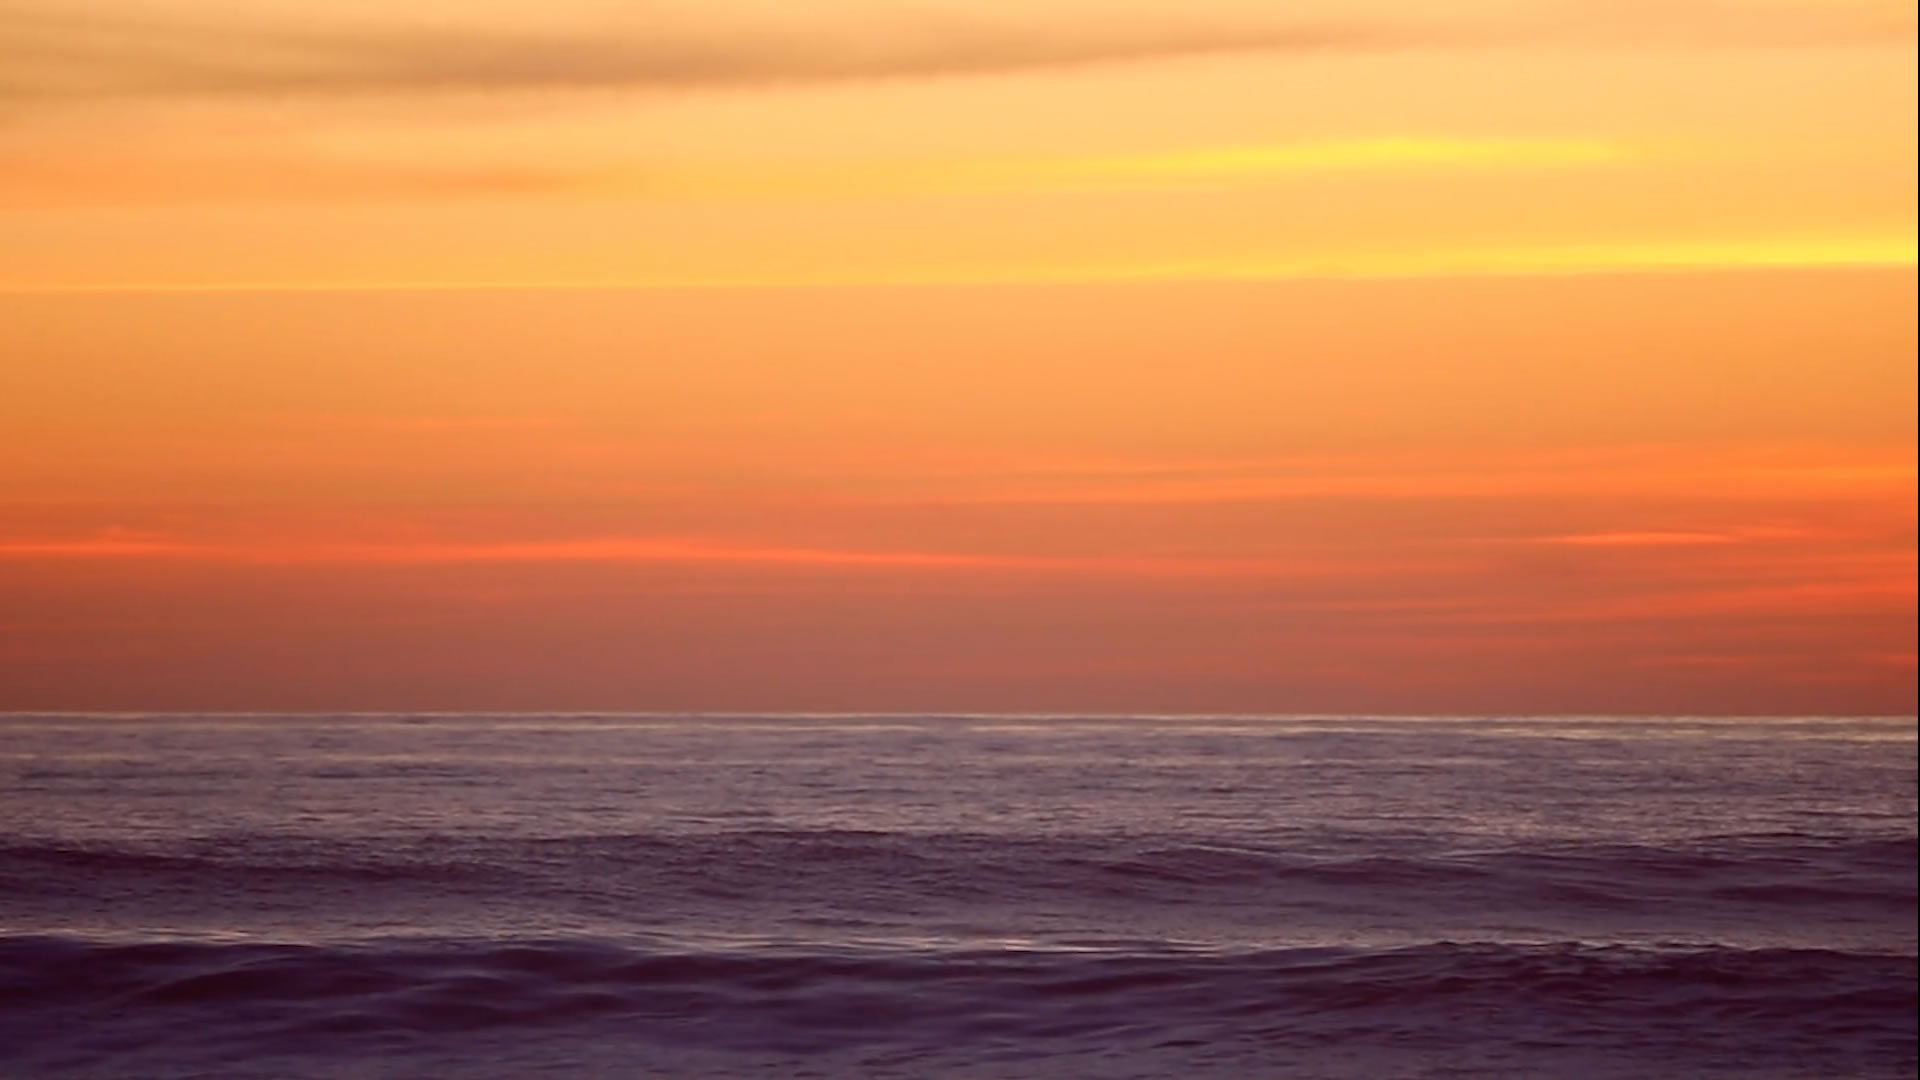 Sunset Over Waves Background Video Loop - MusicTruth - Background Videos